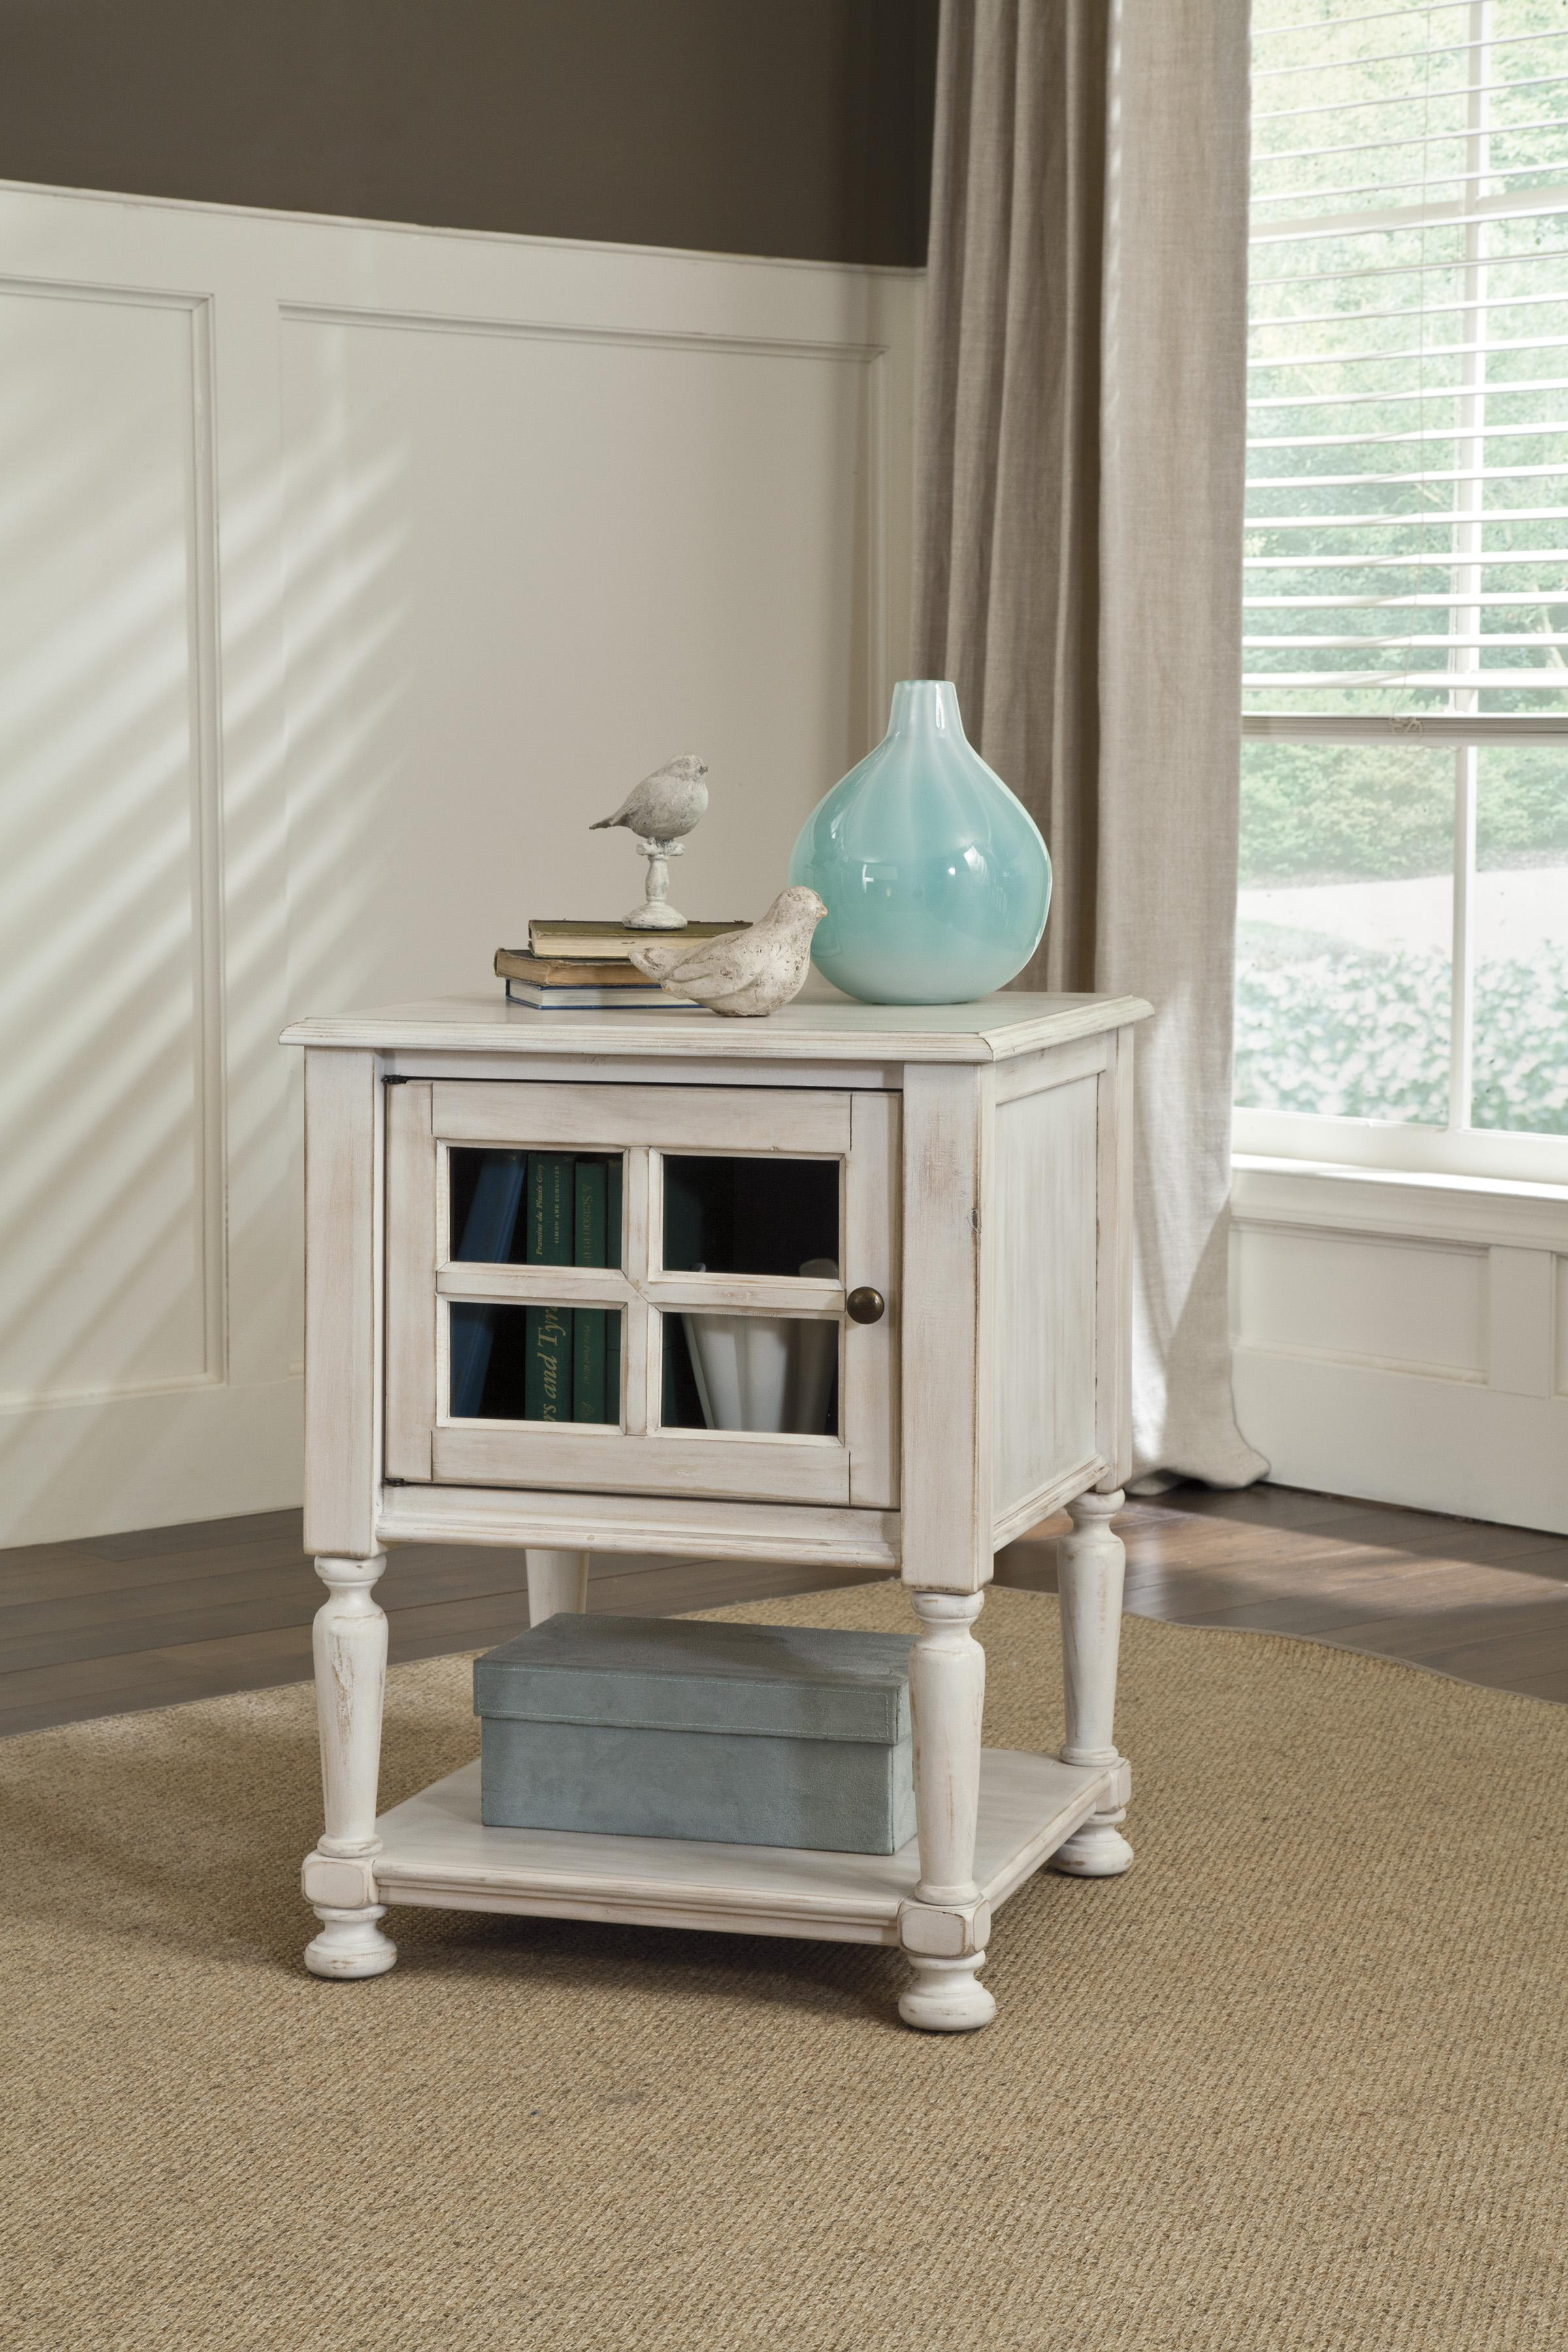 Chair Side End Table With Window Pane Style Framed Glass